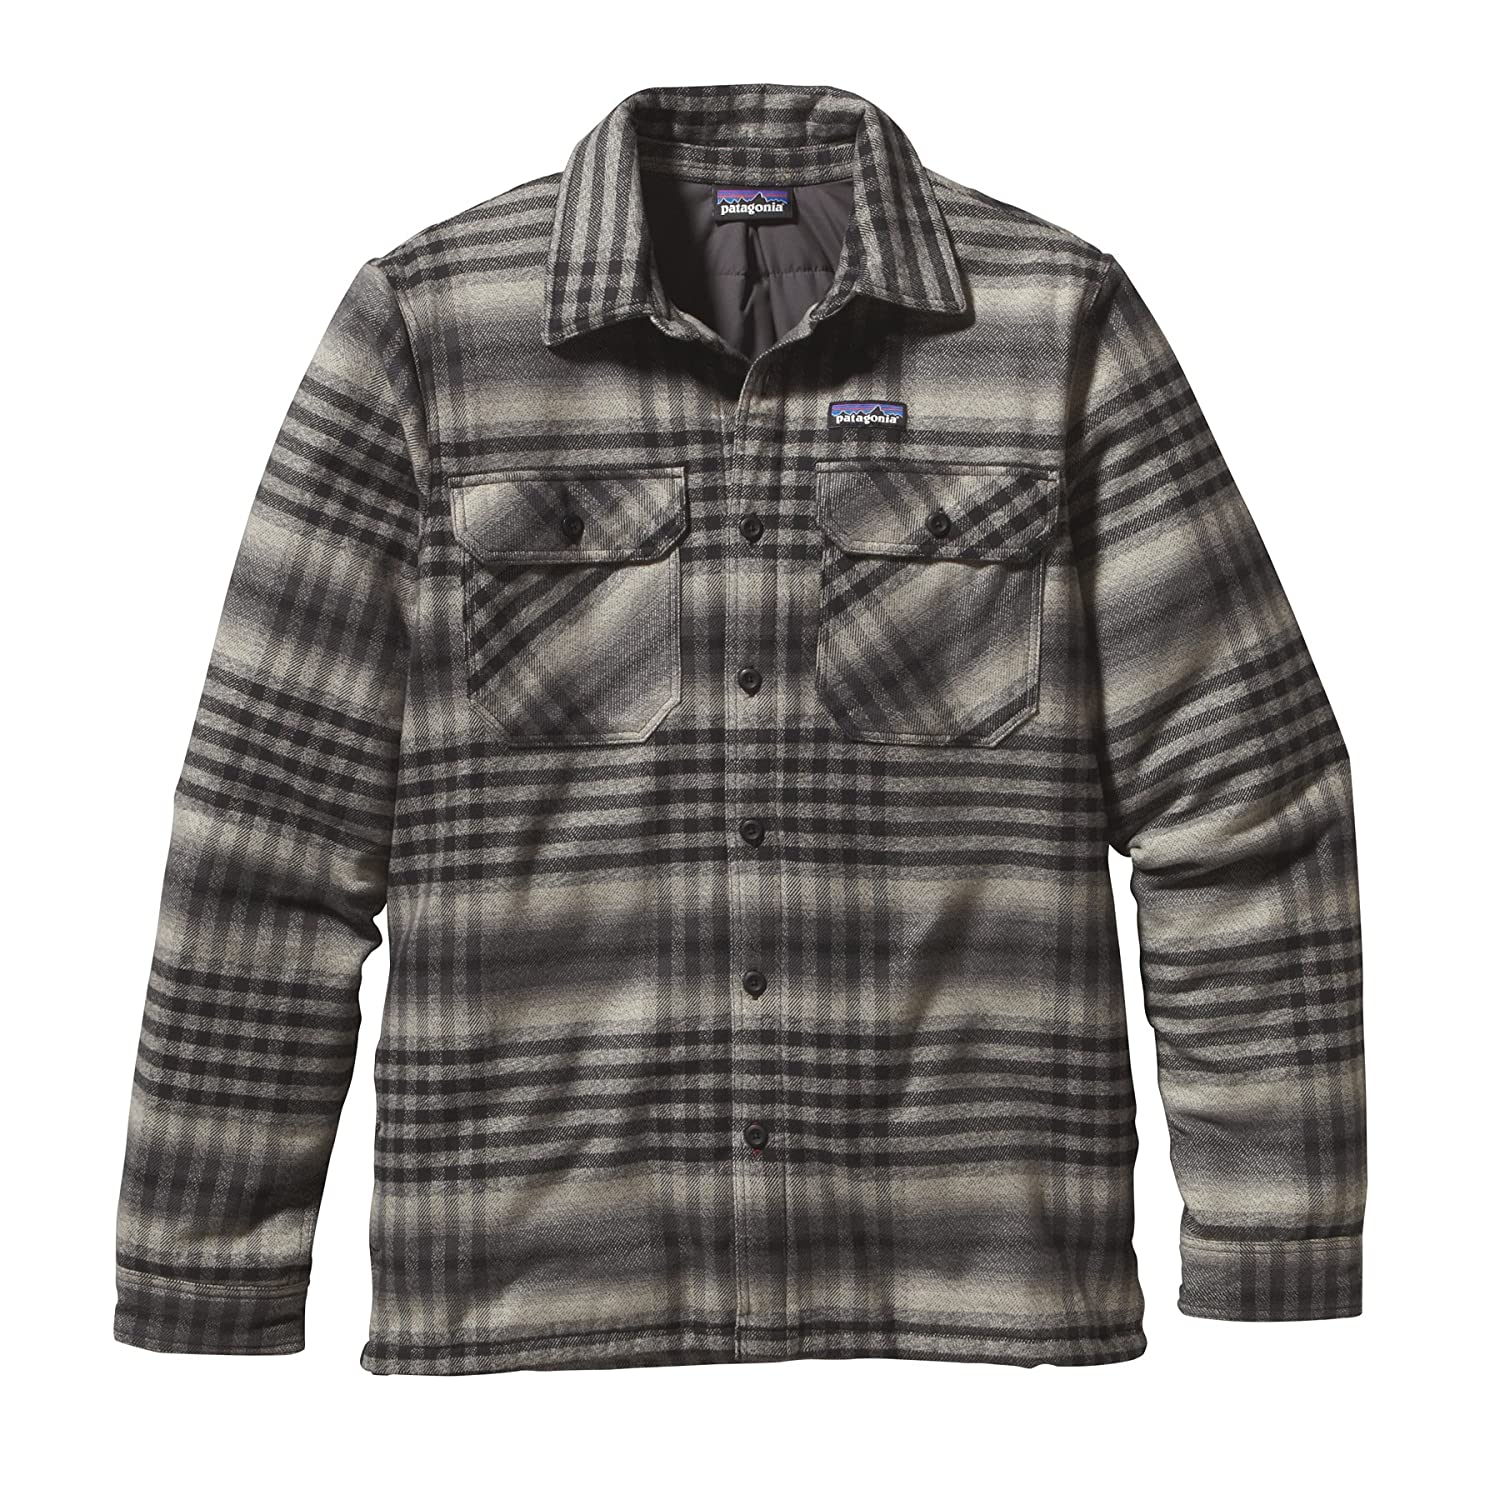 Patagonia Insulated Fjord Flannel Jacket - Winter Dusk: Black - - Isoliertes Herren Thermogreen® Bio-Baumwoll Flanellhemd